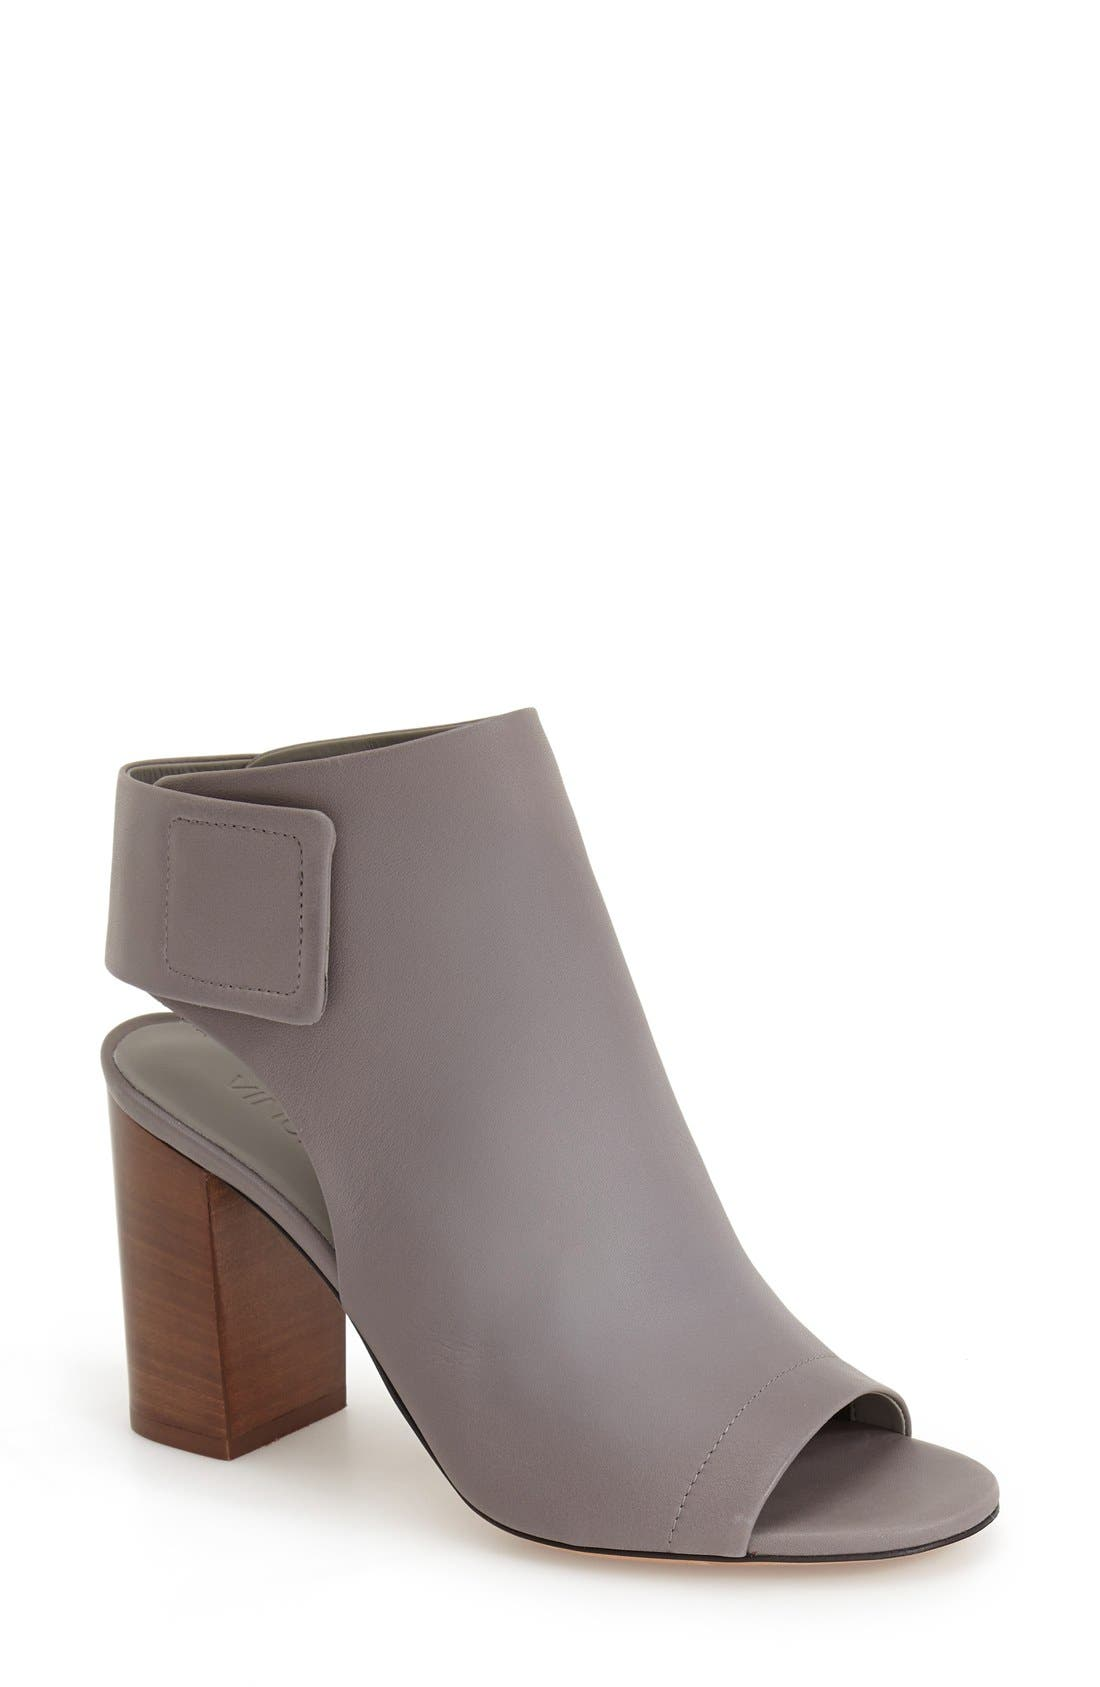 Alternate Image 1 Selected - Vince 'Faye' Leather Bootie (Women)